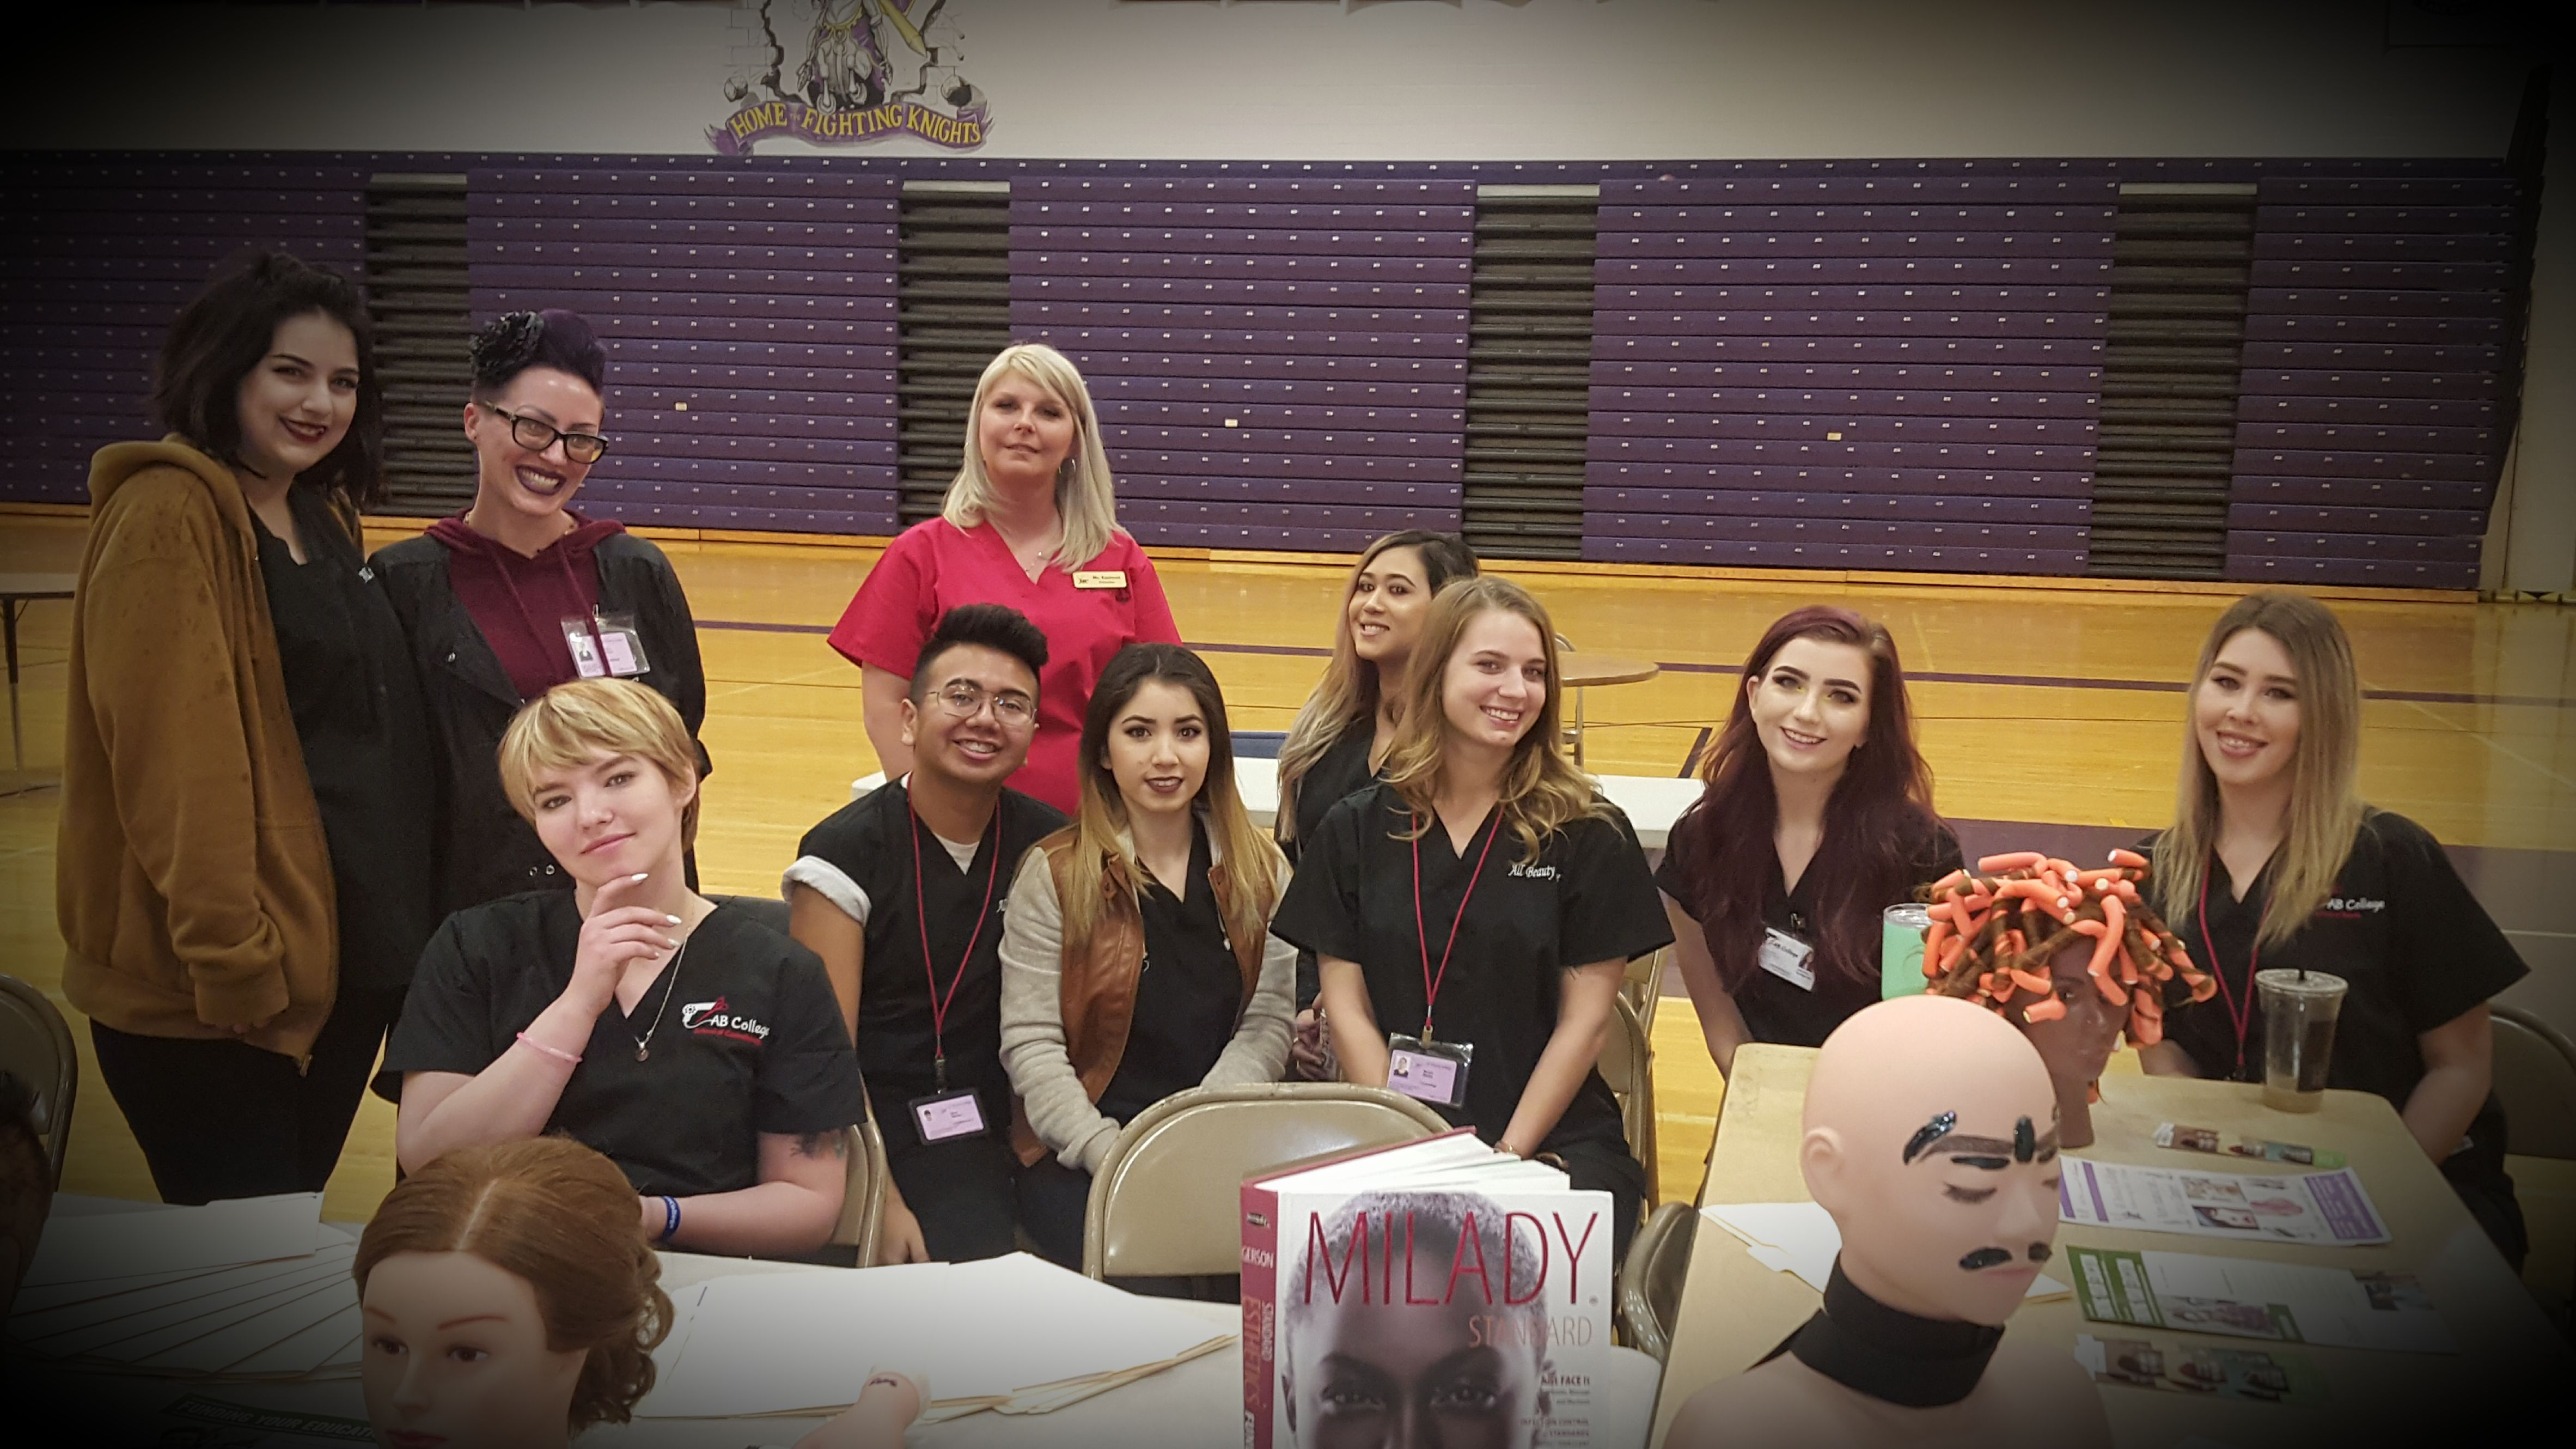 All beauty college was on hand today for lake havasu high